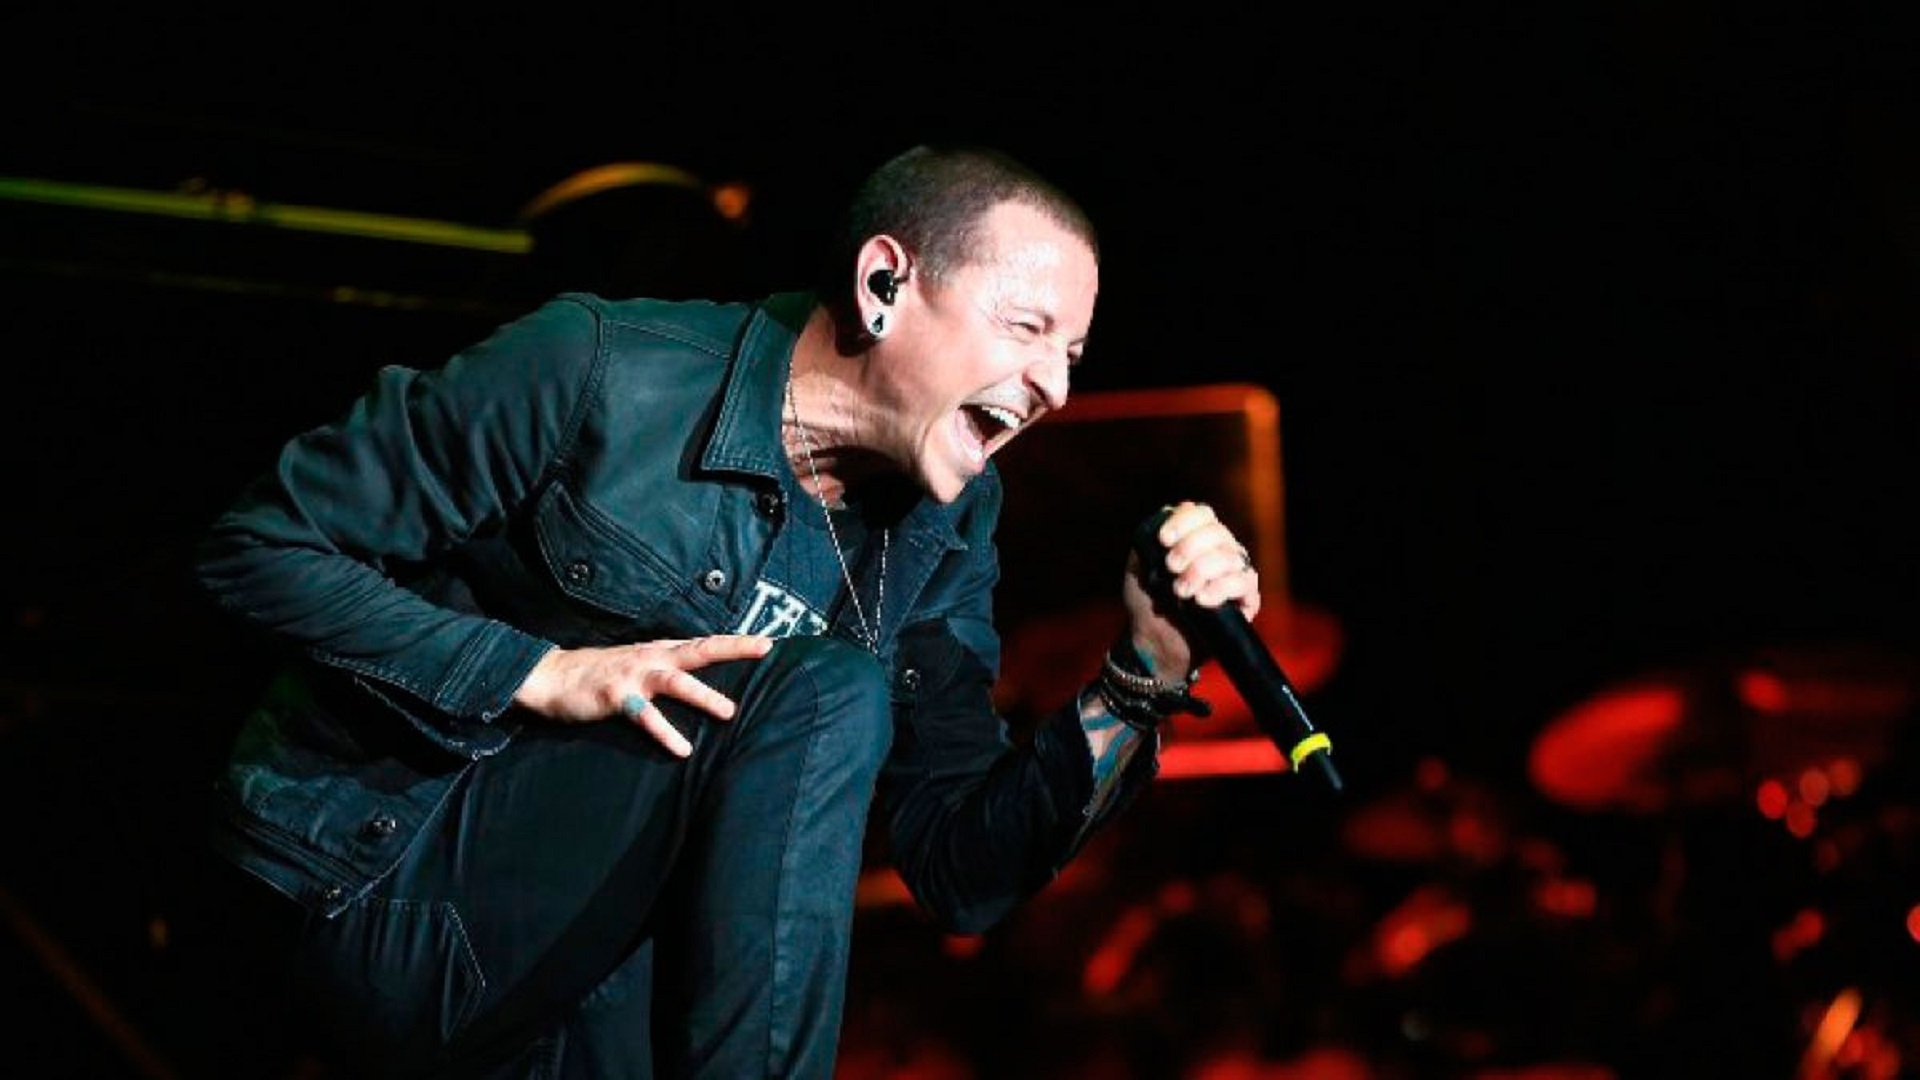 Revelan video de Chester Bennington cantando 'Polly' de Nirvana